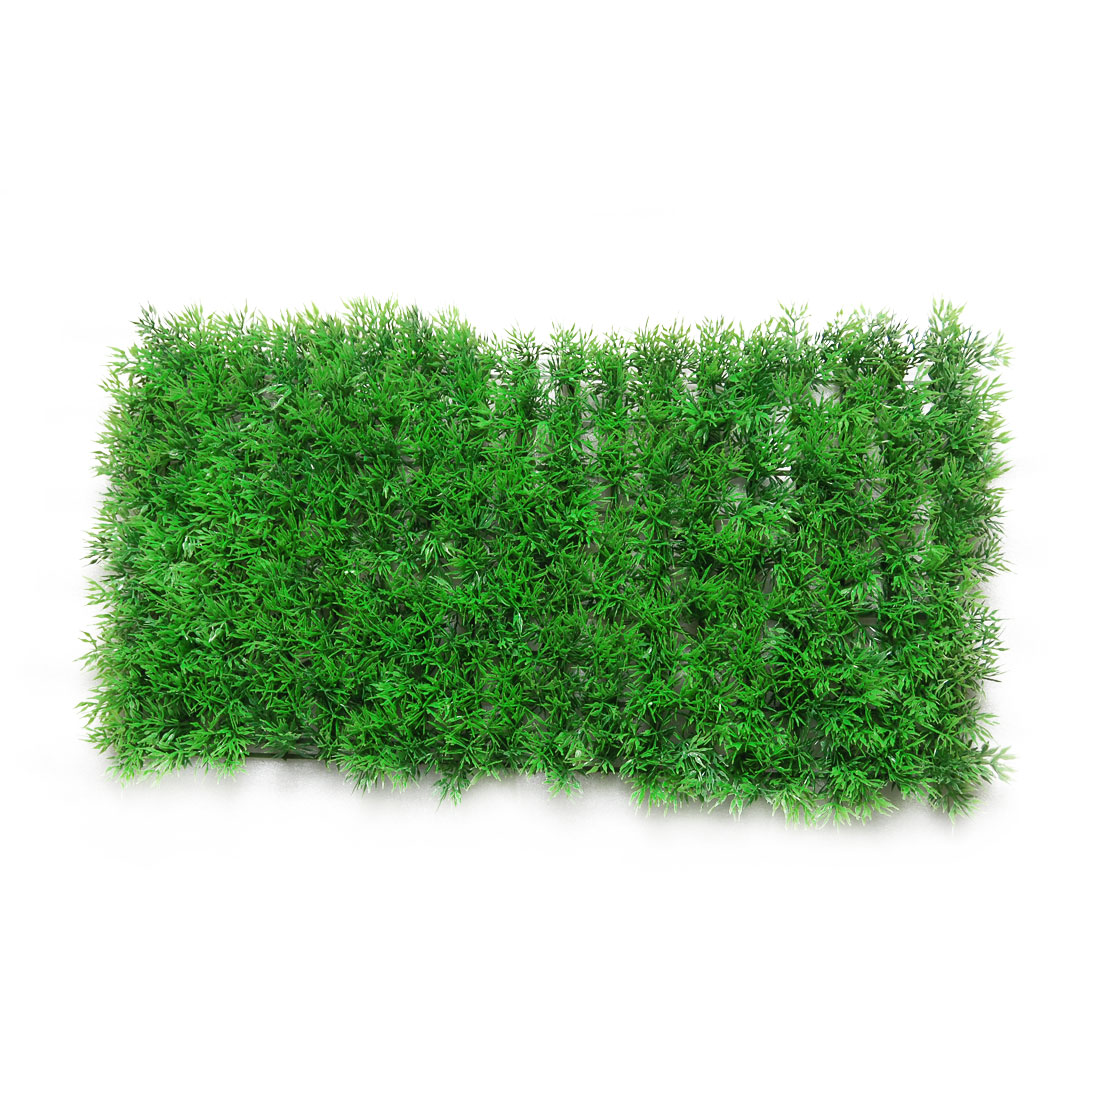 "Fish Aquarium 9.5"" x 18.5"" Plastic Green Grass Lawn Decor"